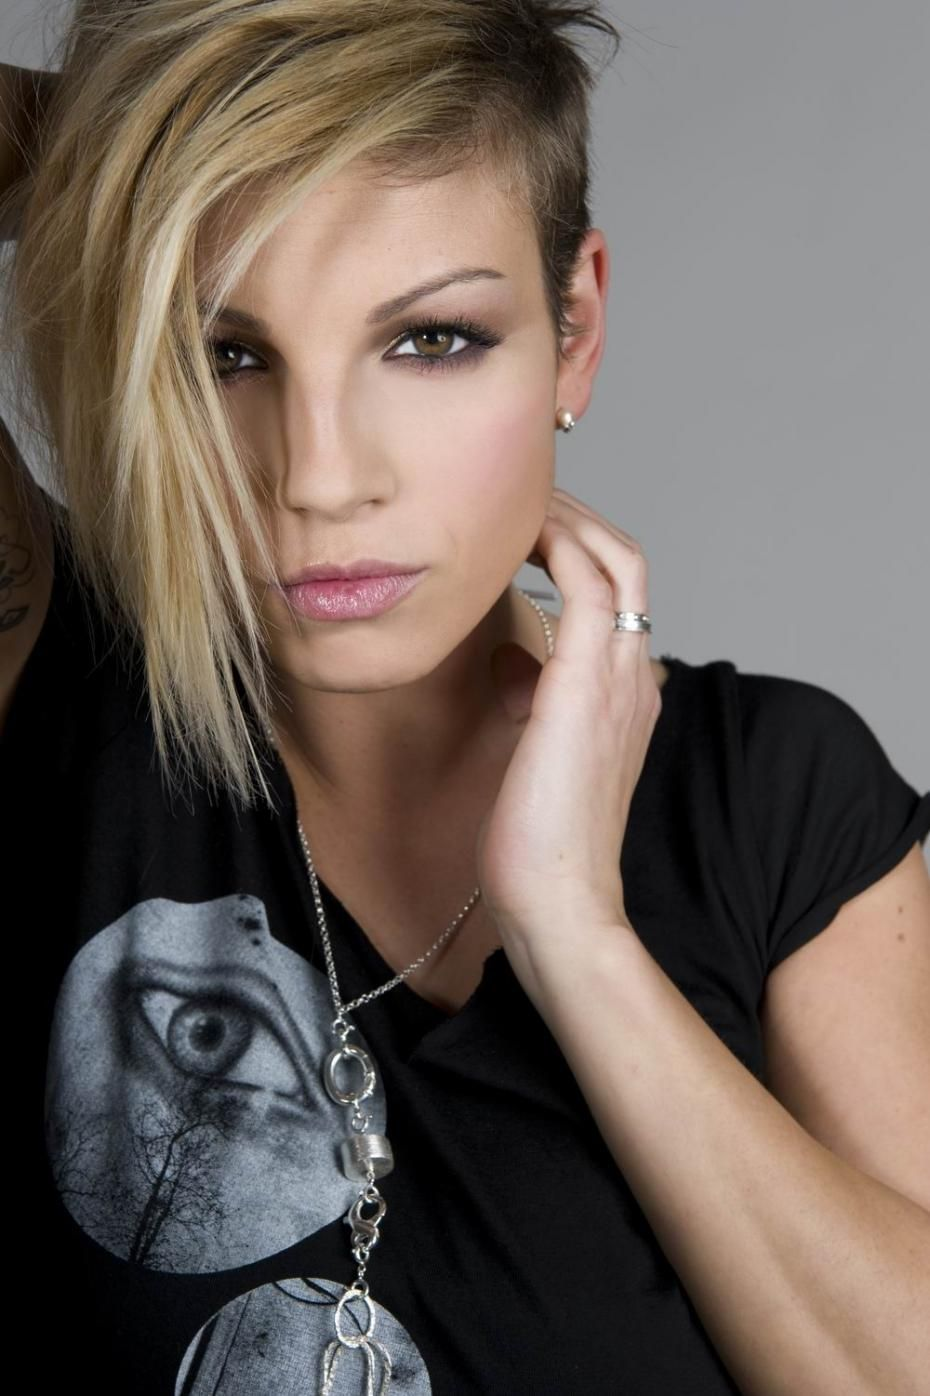 Is a cute Emma Marrone